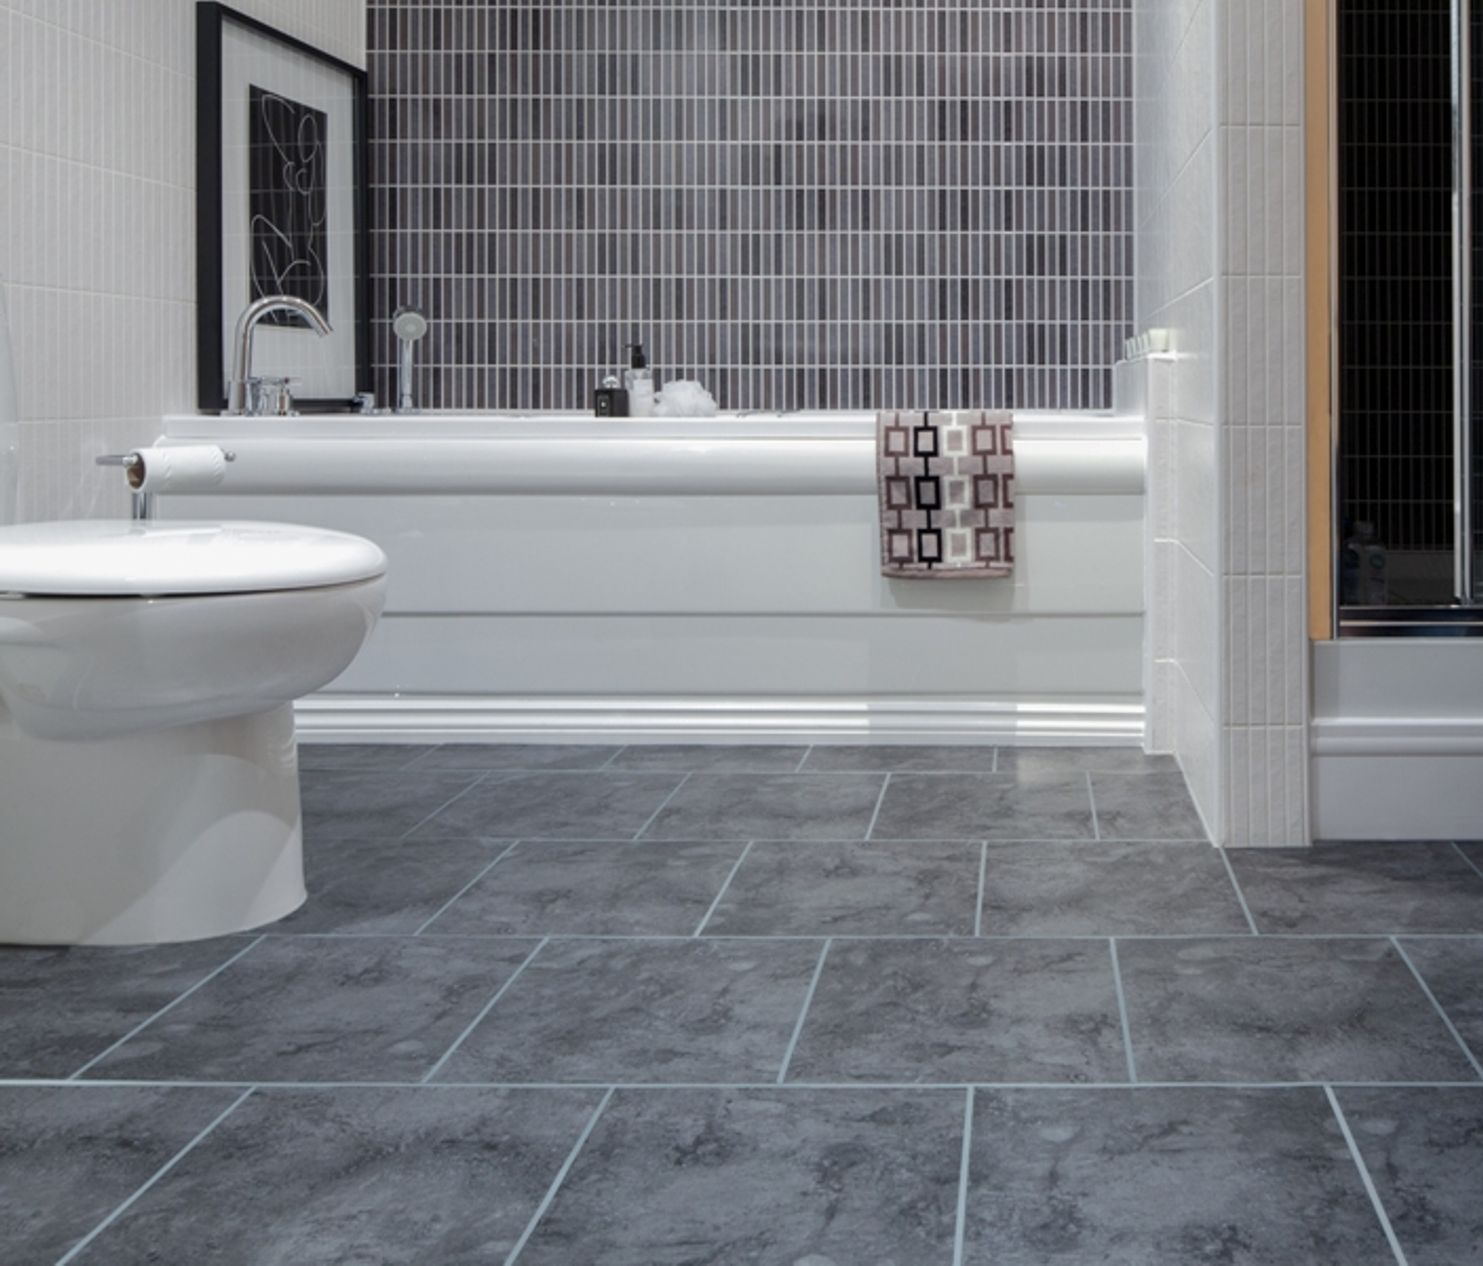 Awesome Gray Bathroom Tile Floor Grey Bathroom Floor Tiles For Neutral Also  Home Depot Bathroom Tiles. Awesome Gray Bathroom Tile Floor Grey Bathroom Floor Tiles For